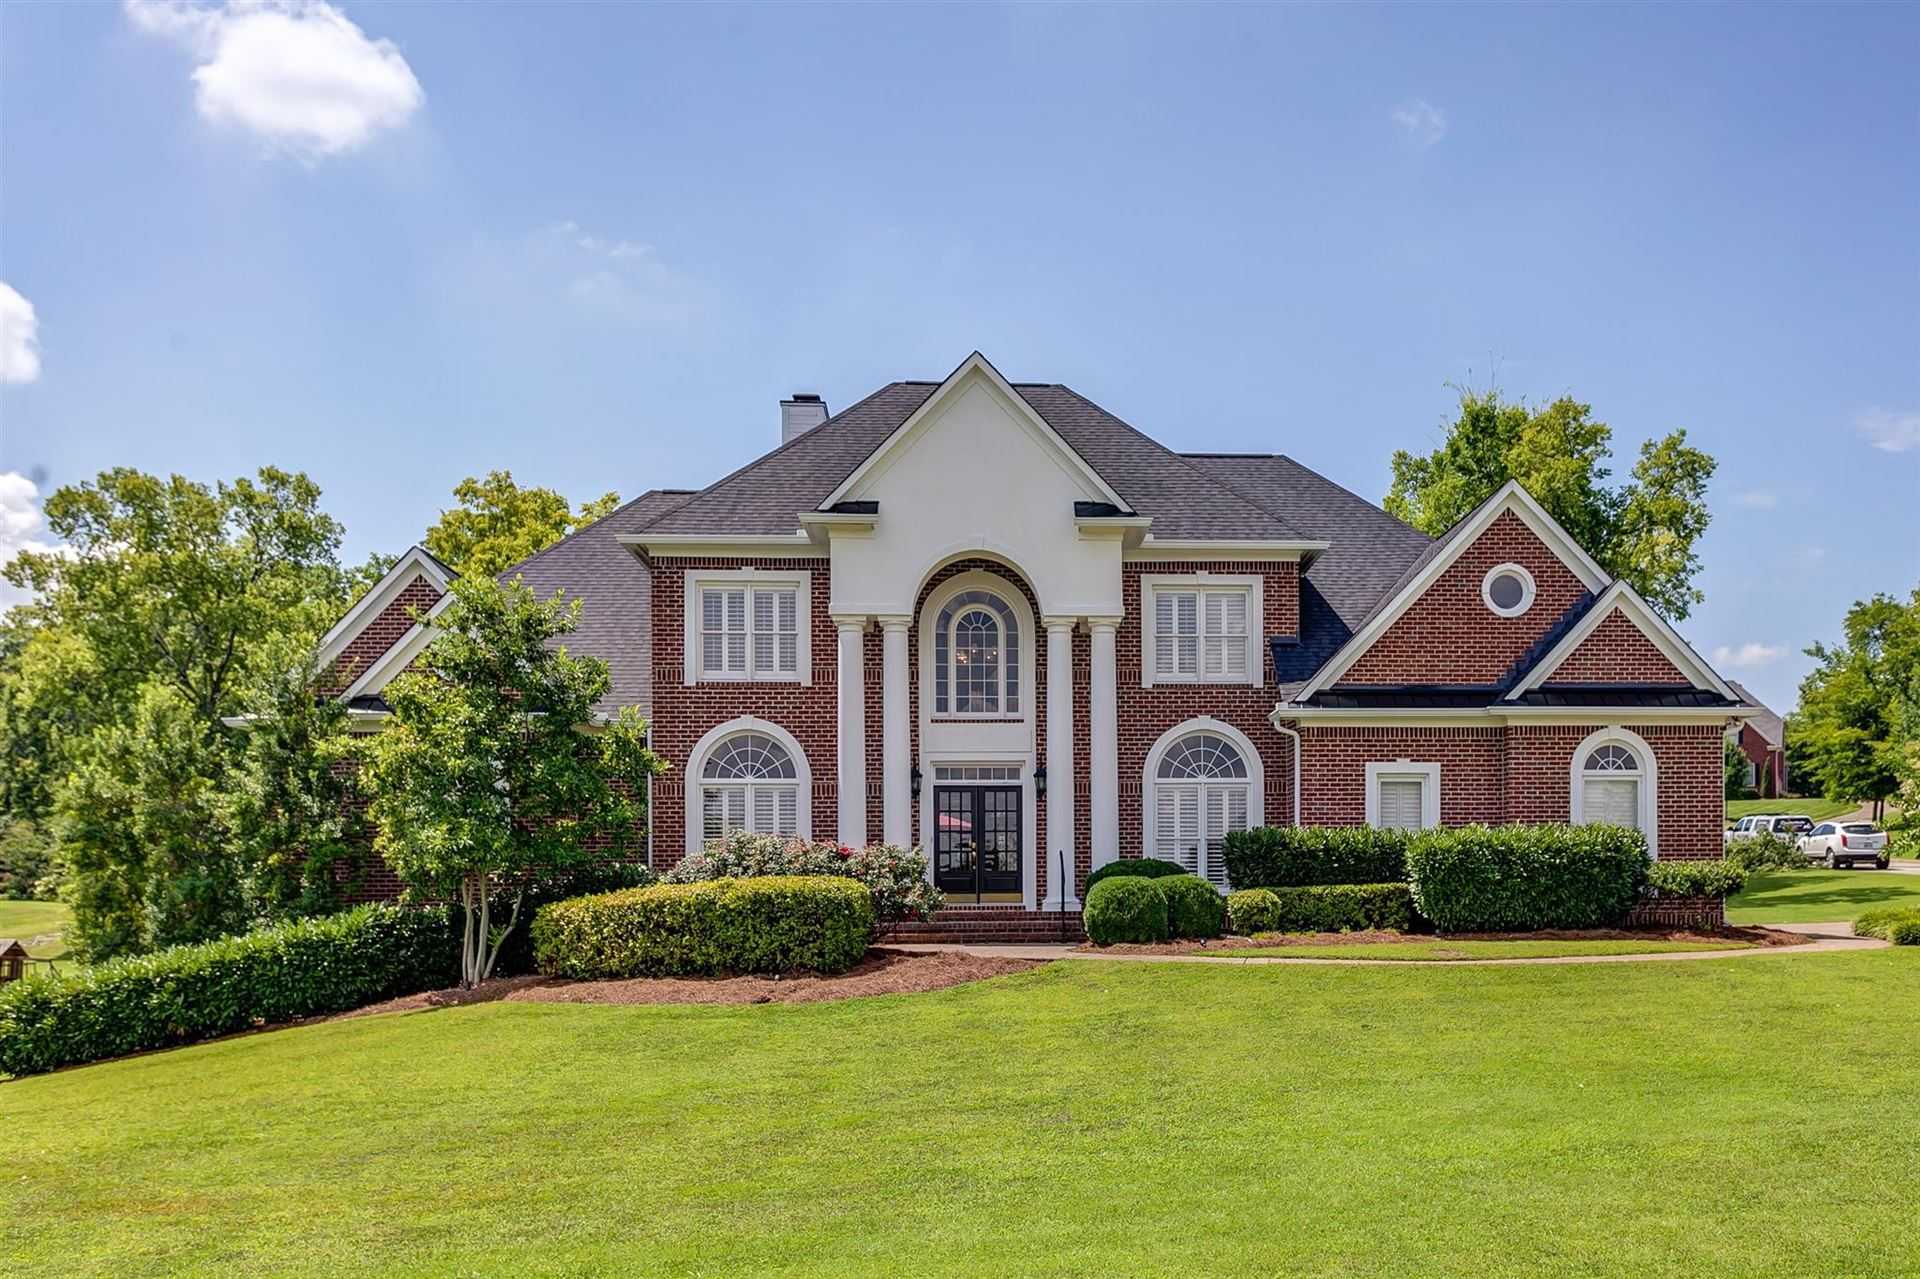 Photo of 9233 Weston Dr, Brentwood, TN 37027 (MLS # 2232251)